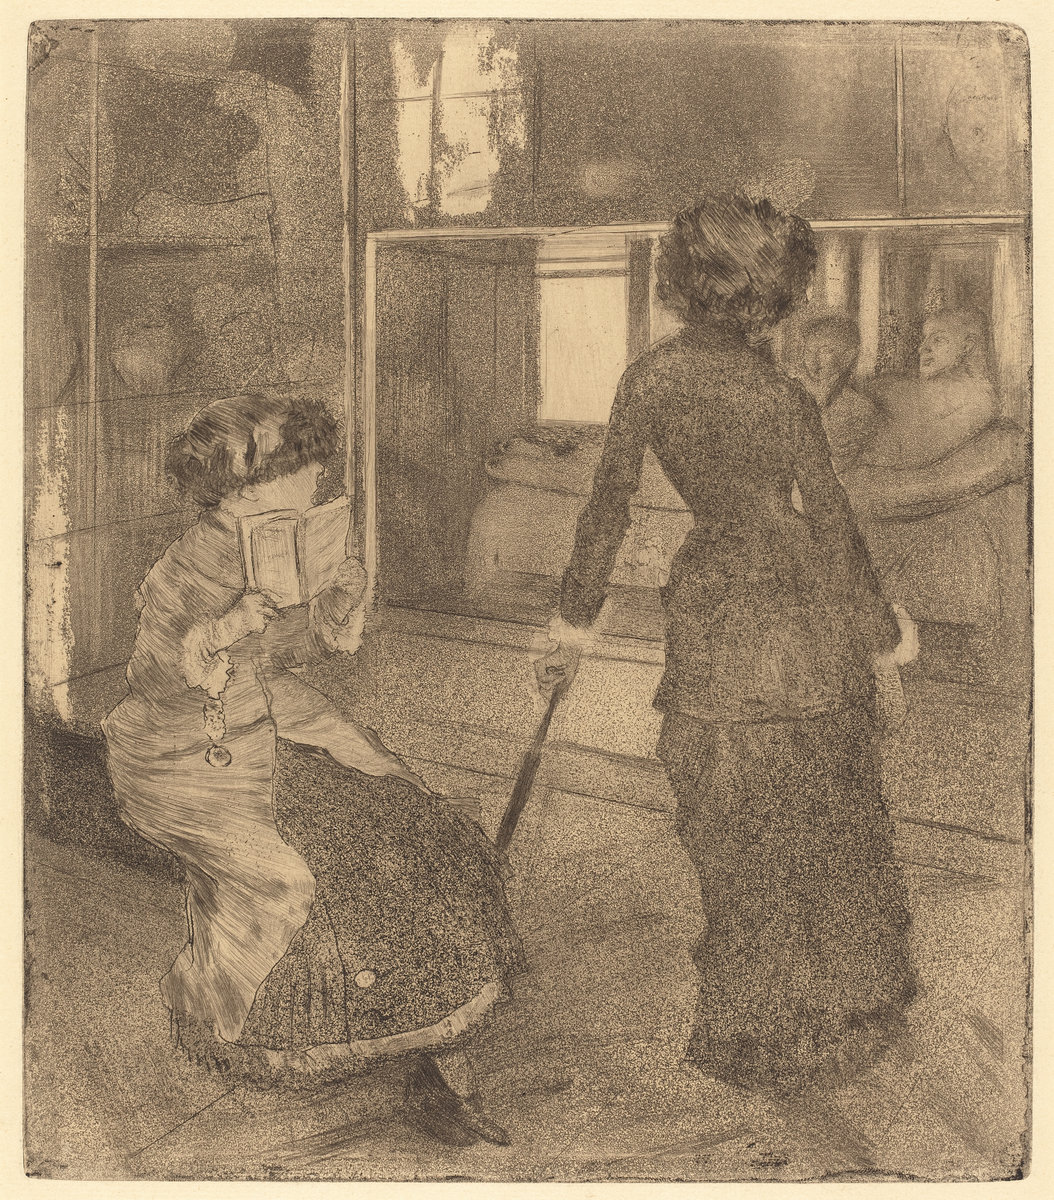 Edgar Degas,  Mary Cassatt at the Louvre: The Etruscan Gallery,  c. 1879/1880, etching, aquatint, and electric crayon, plate: 26.8 x 23.4 cm (10 9/16 x 9 3/16 in.) sheet: 41.5 x 30.6 cm (16 5/16 x 12 1/16 in.), National Gallery of Art, Rosenwald Collection, 1943.3.3366.